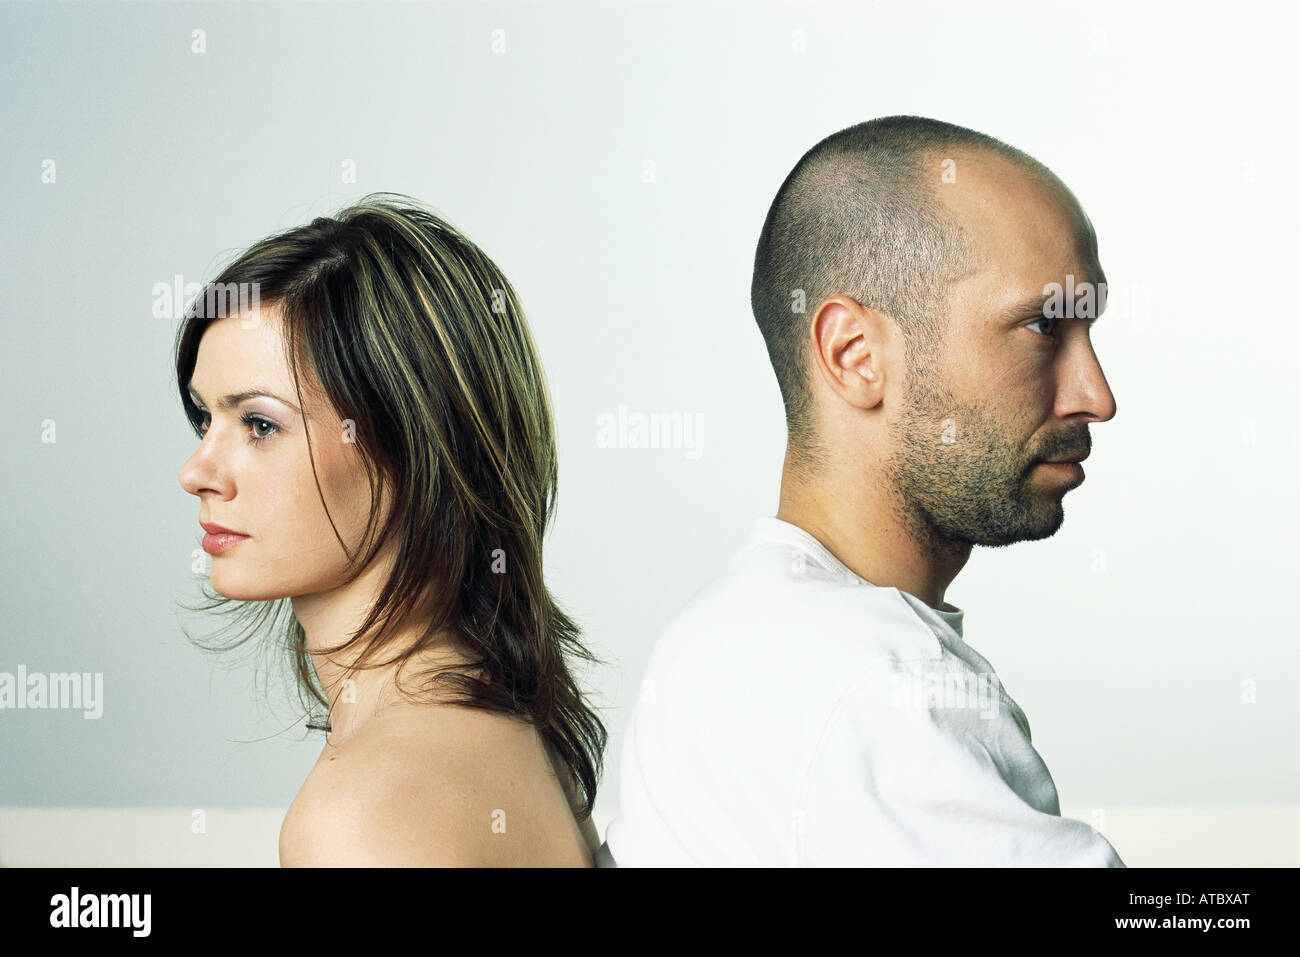 Couple back to back, both looking away, side view - Stock Image